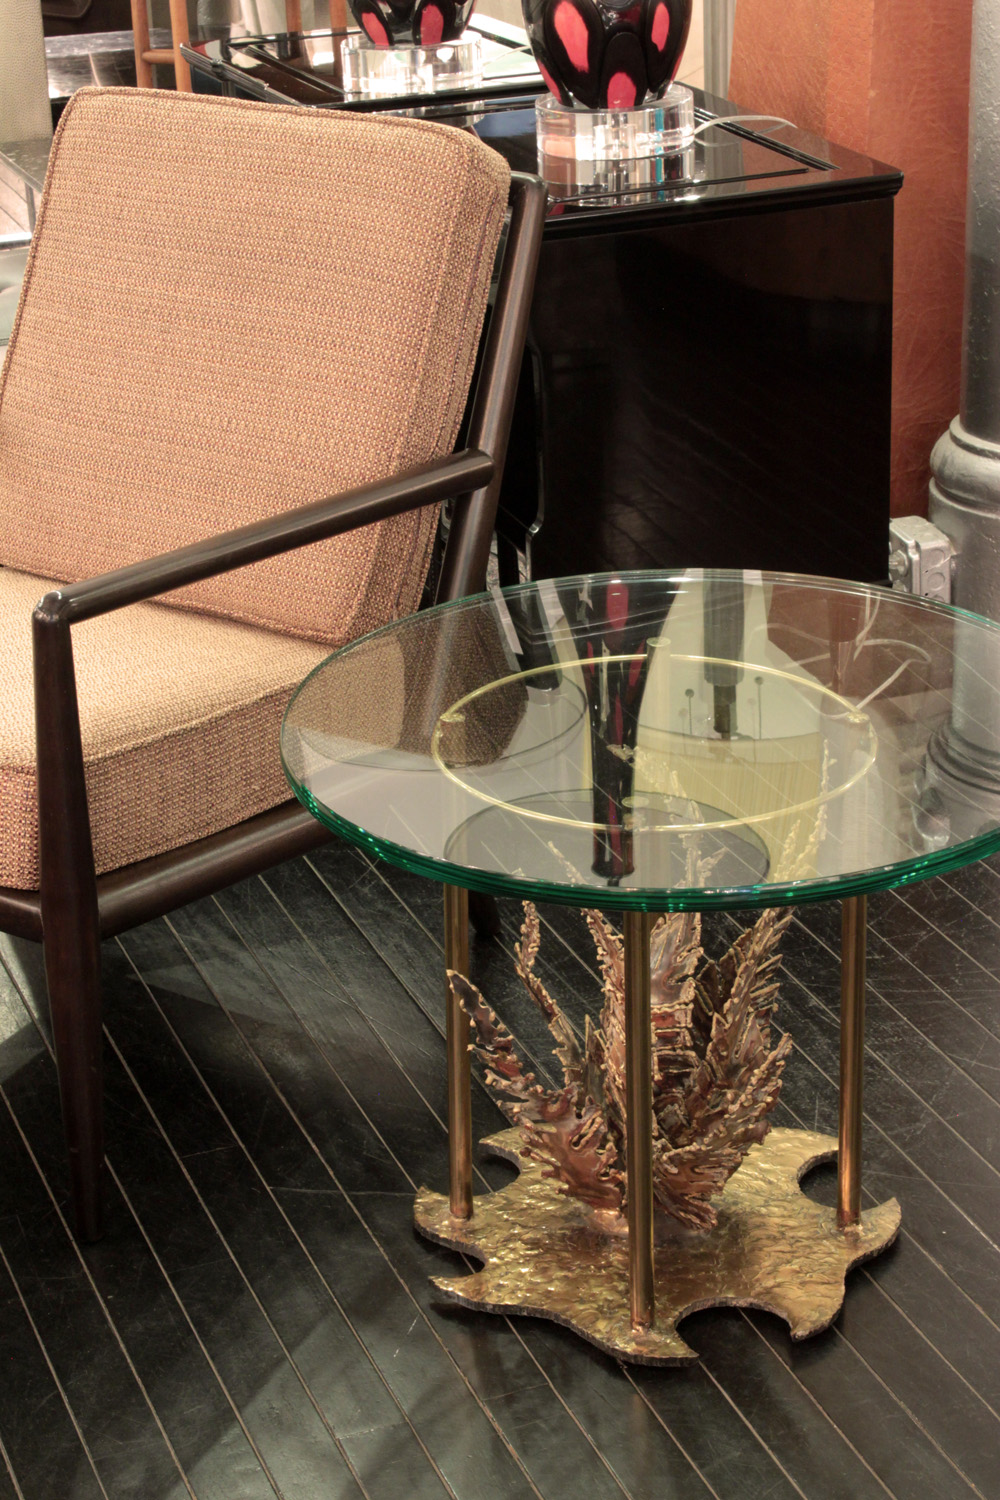 Seandel 45 brass fern under glass endtable132 detail2 hires.jpg